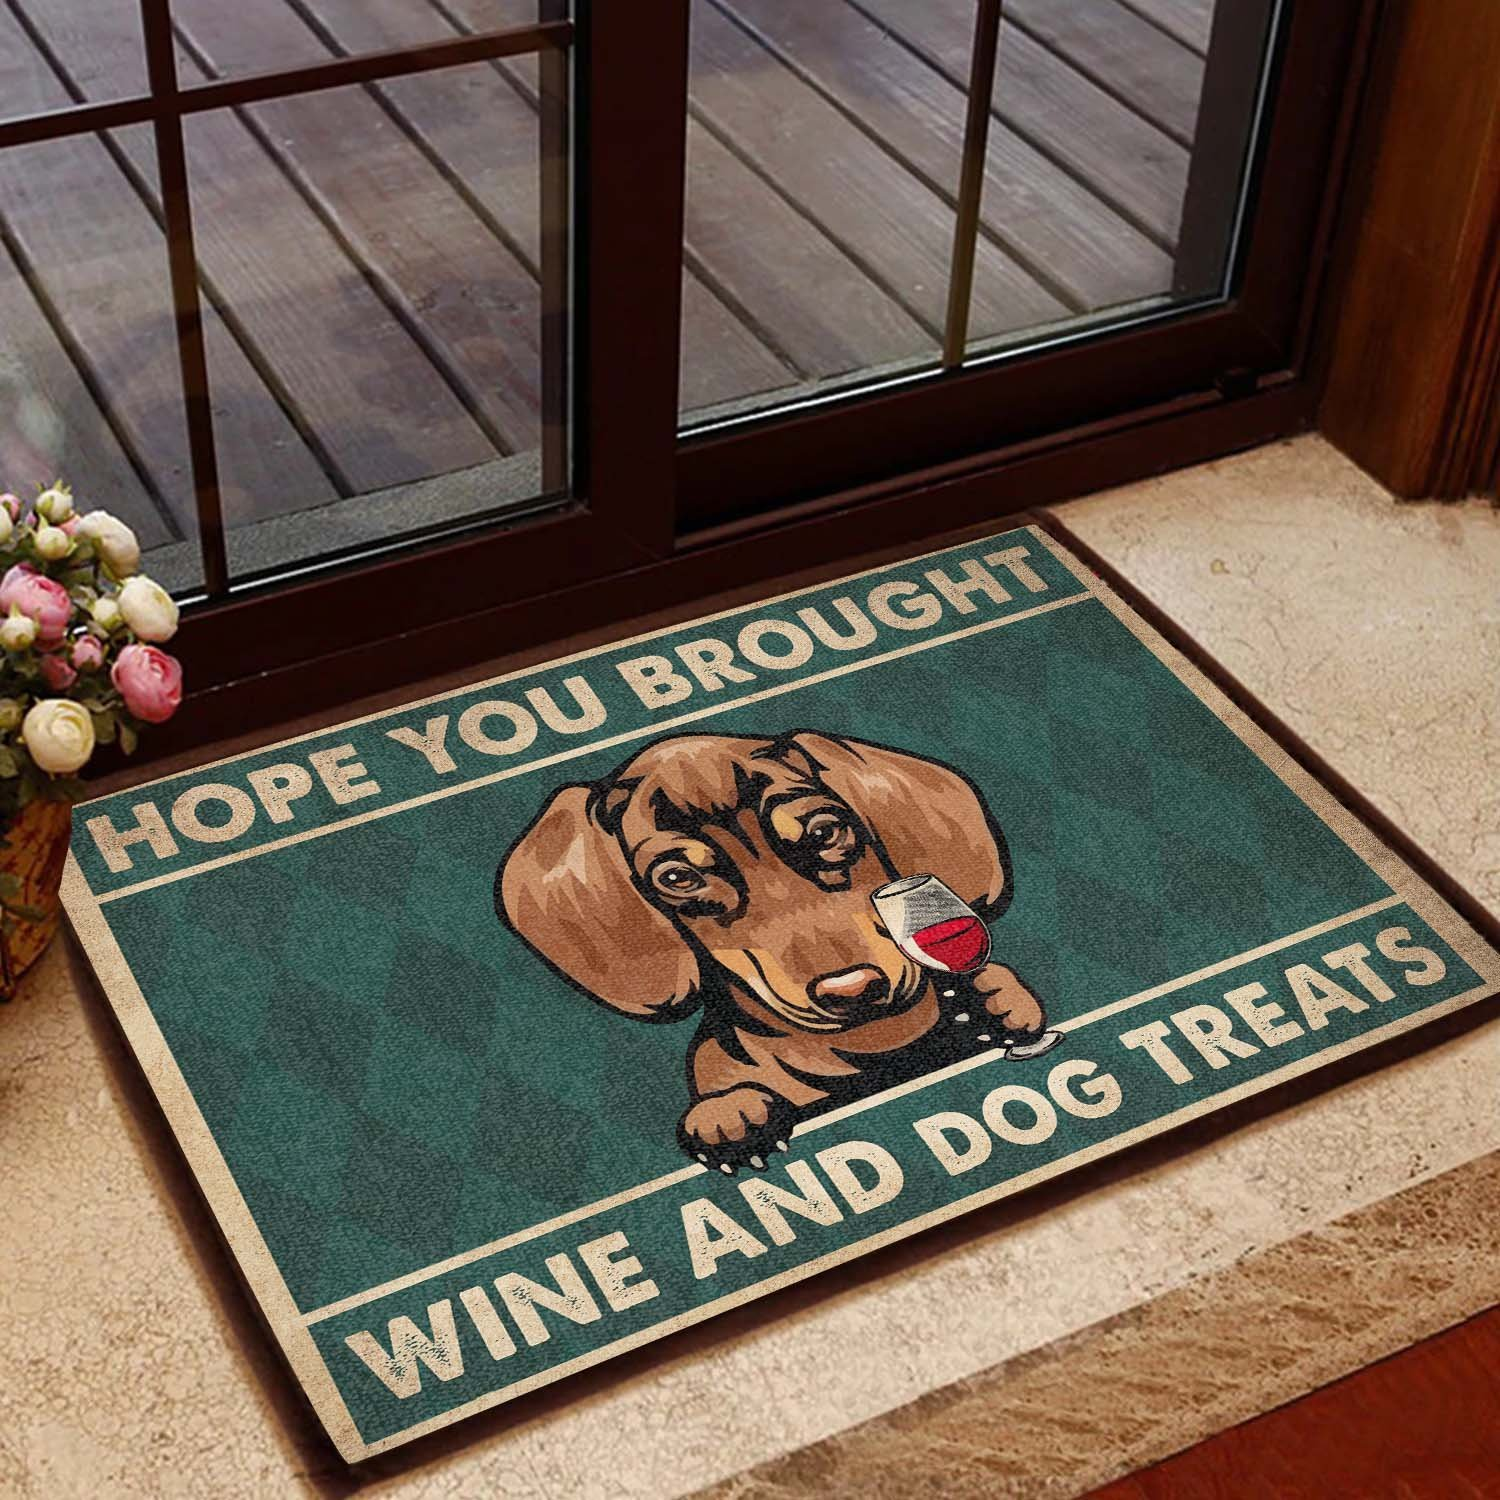 vintage dachshund hope you brought wine and dogs treats doormat 1